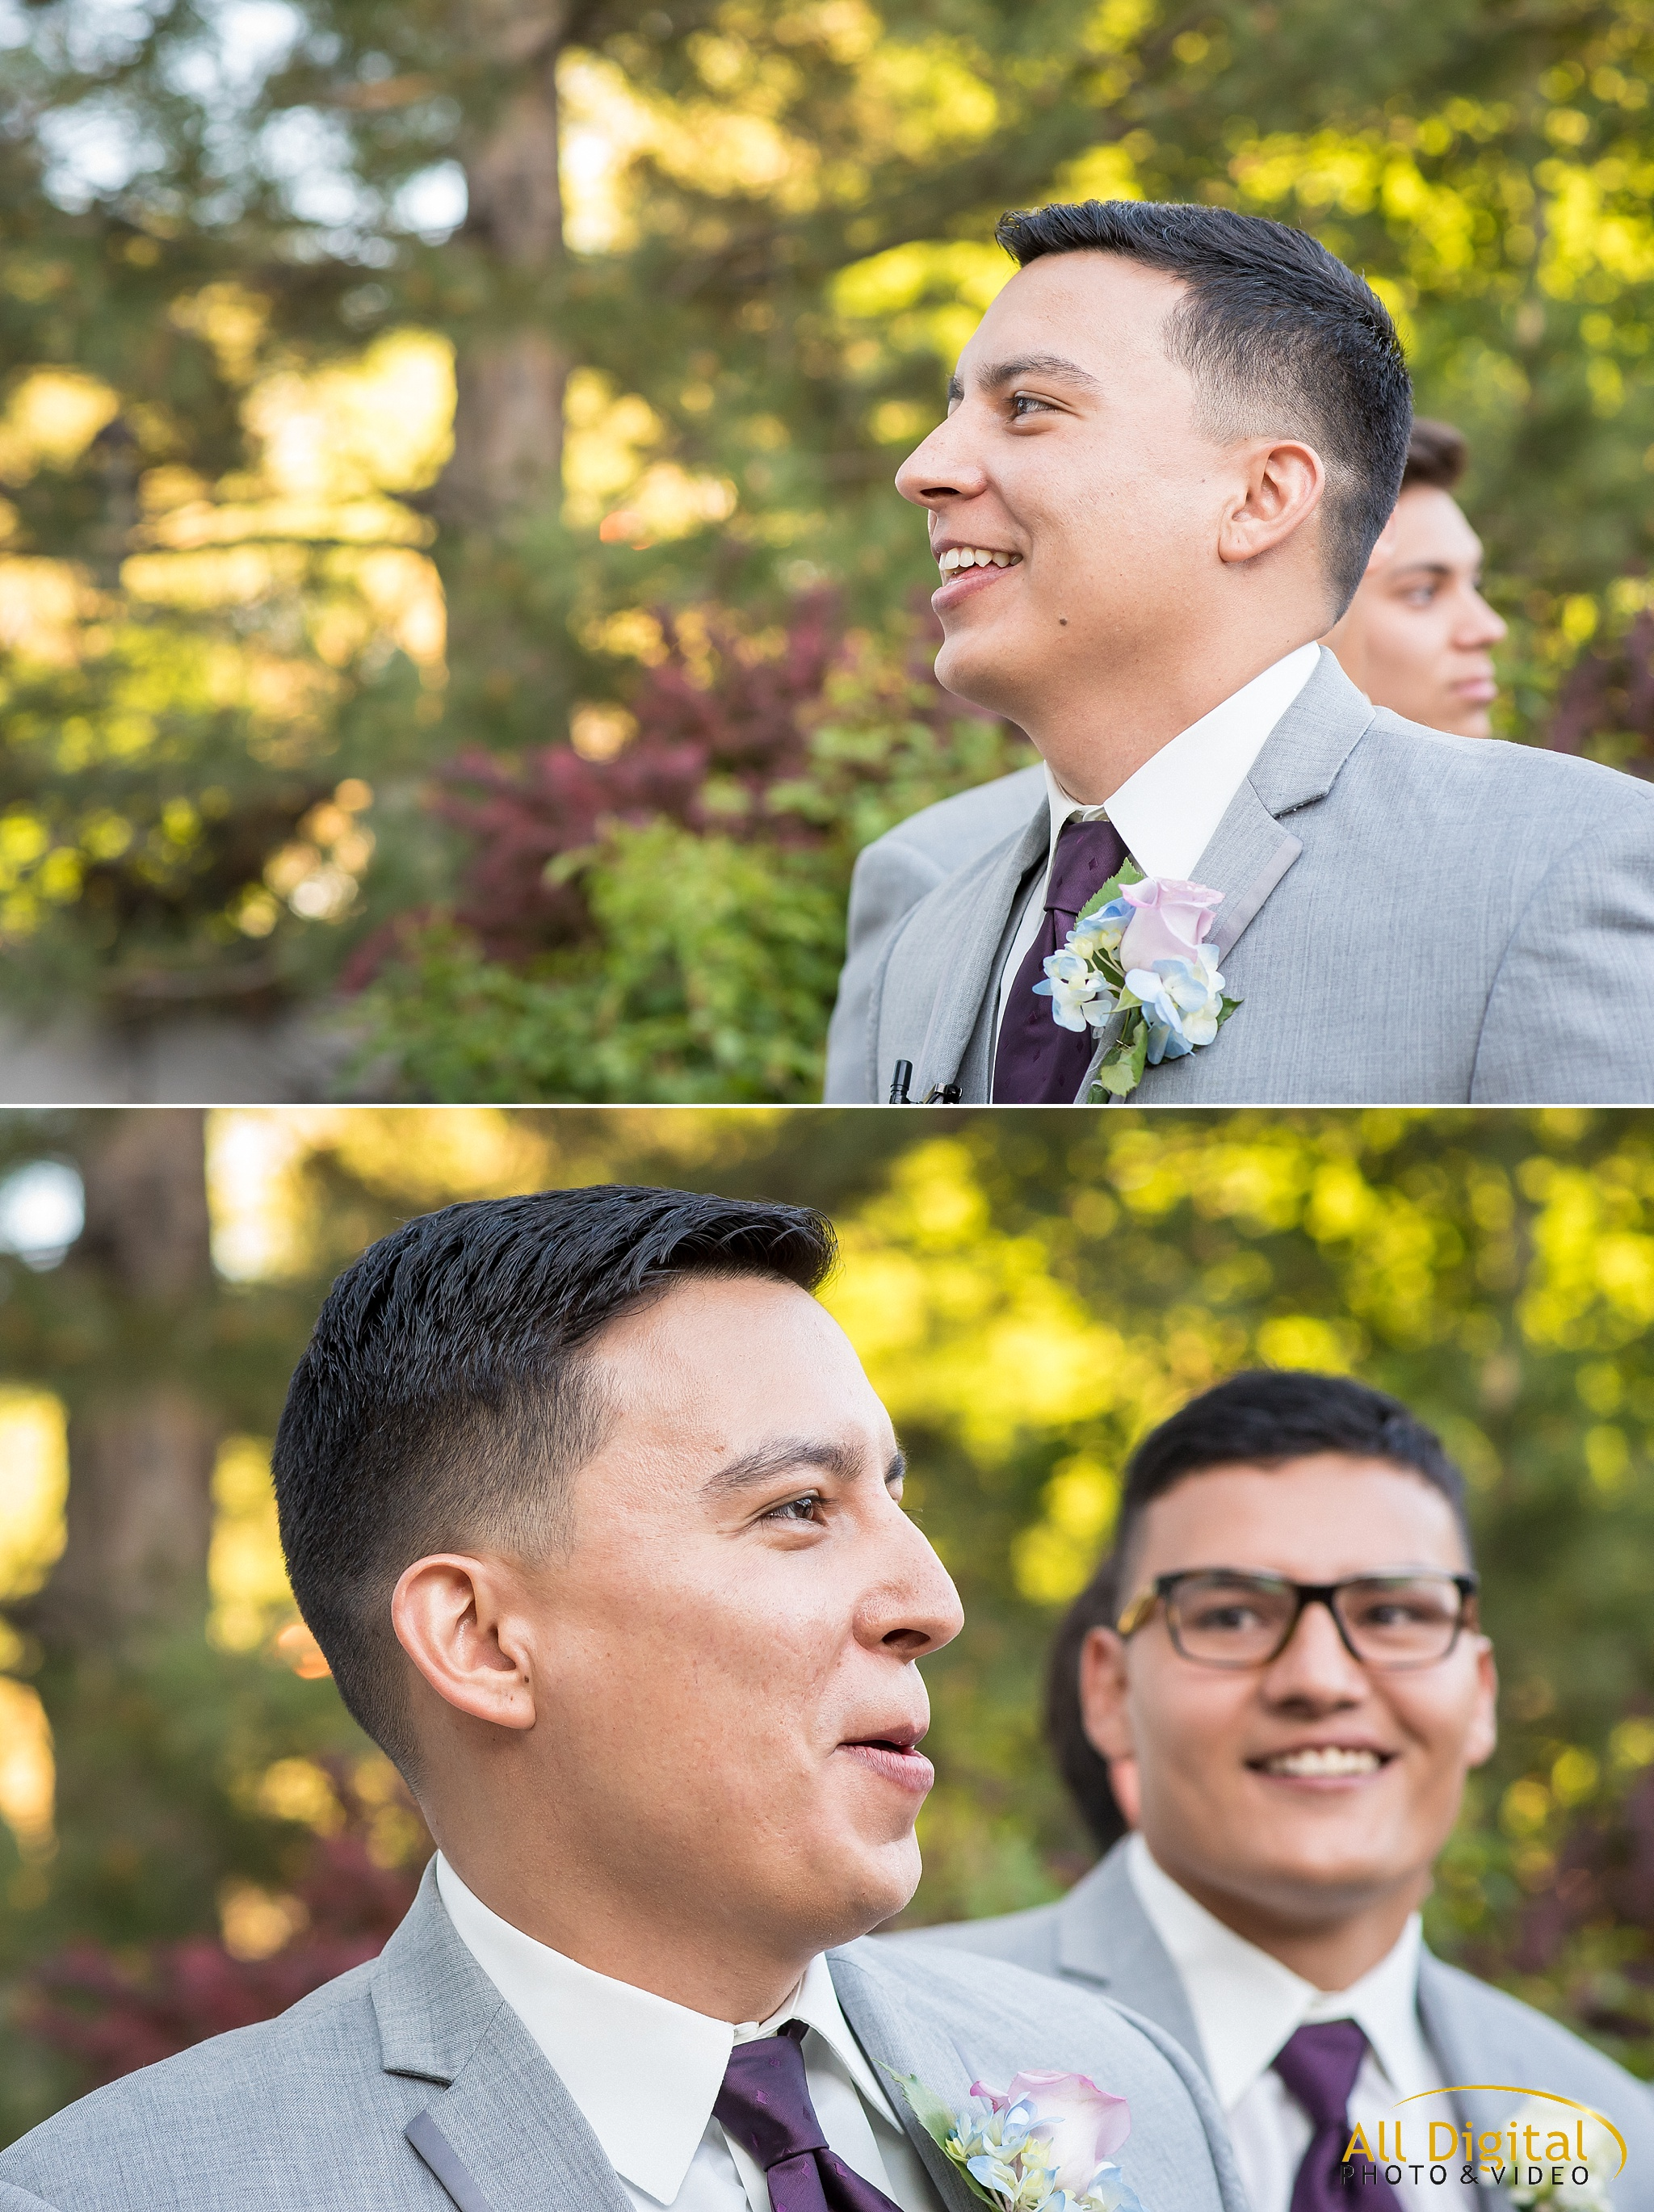 Groom seeing his bride for the first time at Stonebrook Manor.